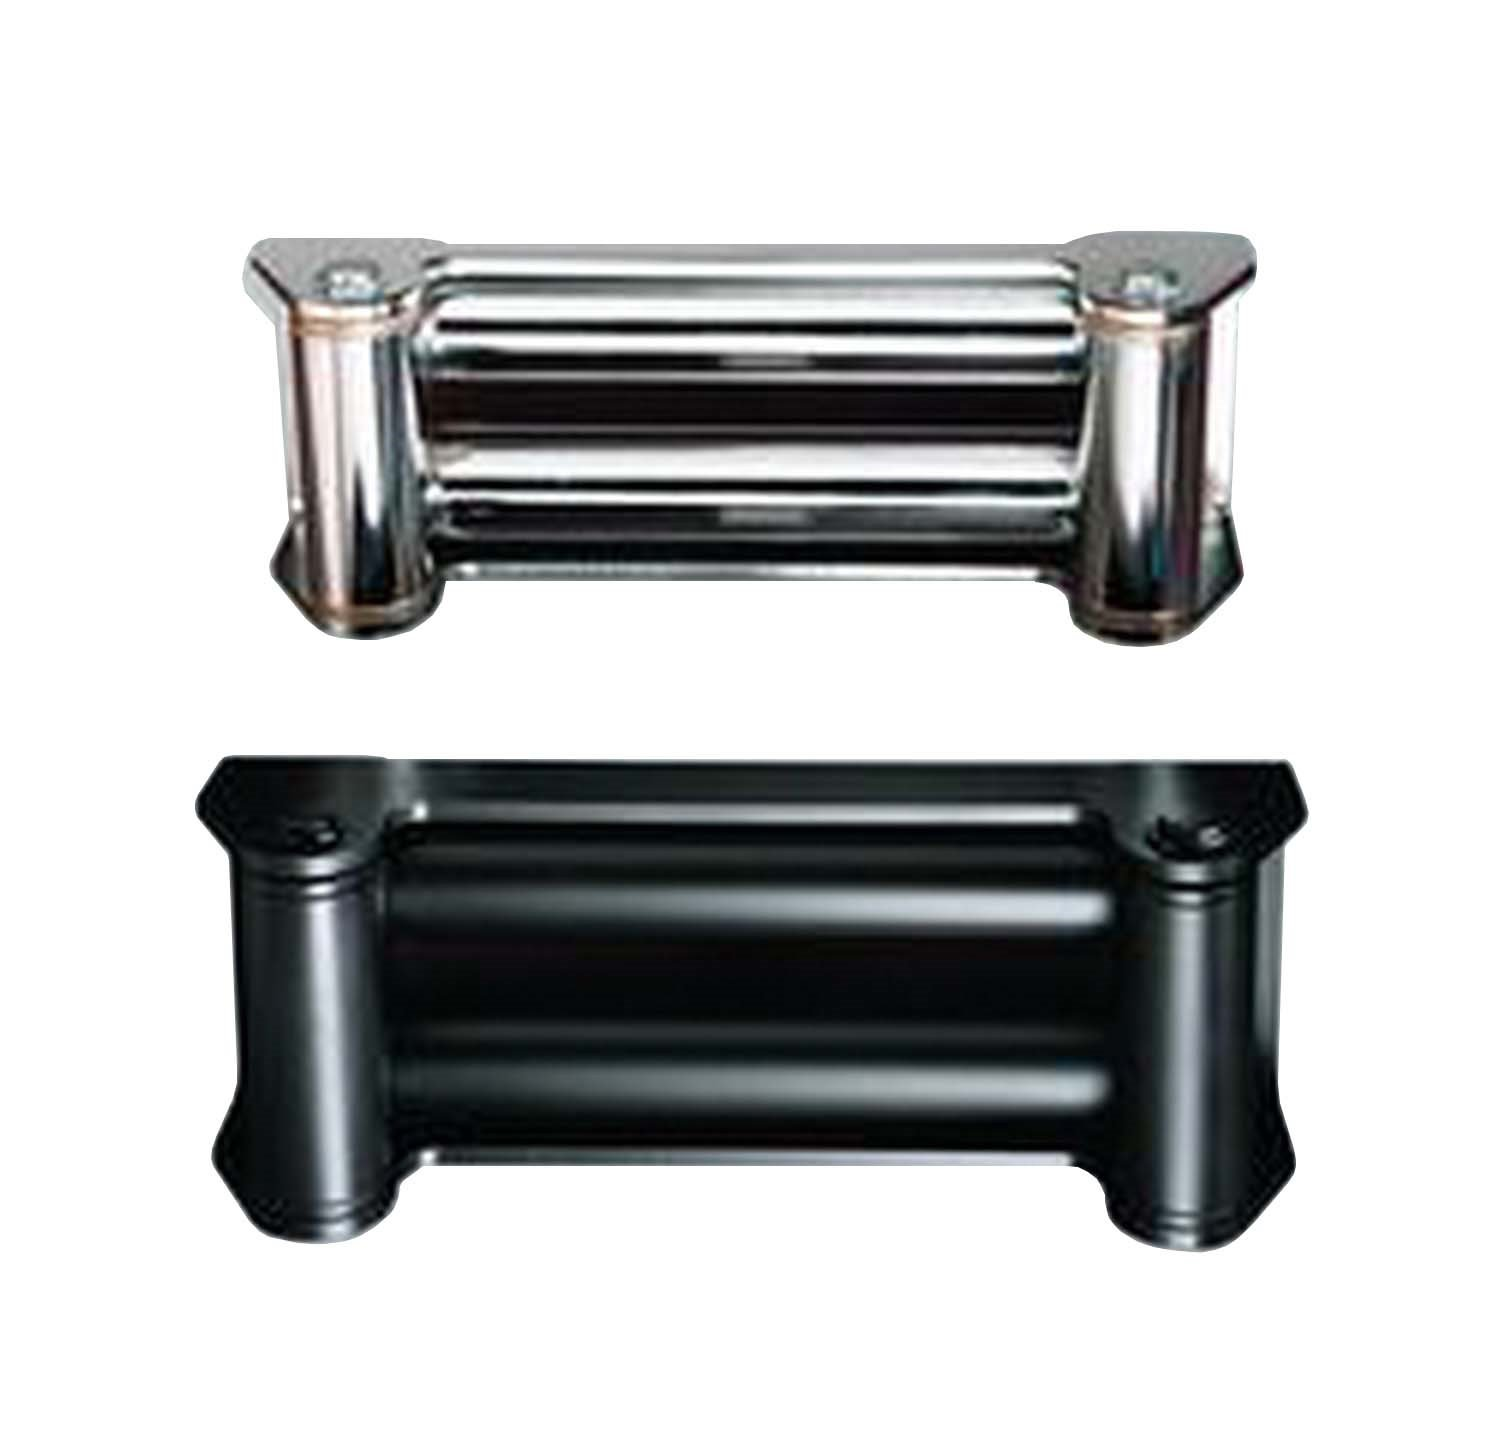 Warn 82550 Roller Fairlead Kit by Warn (Image #1)